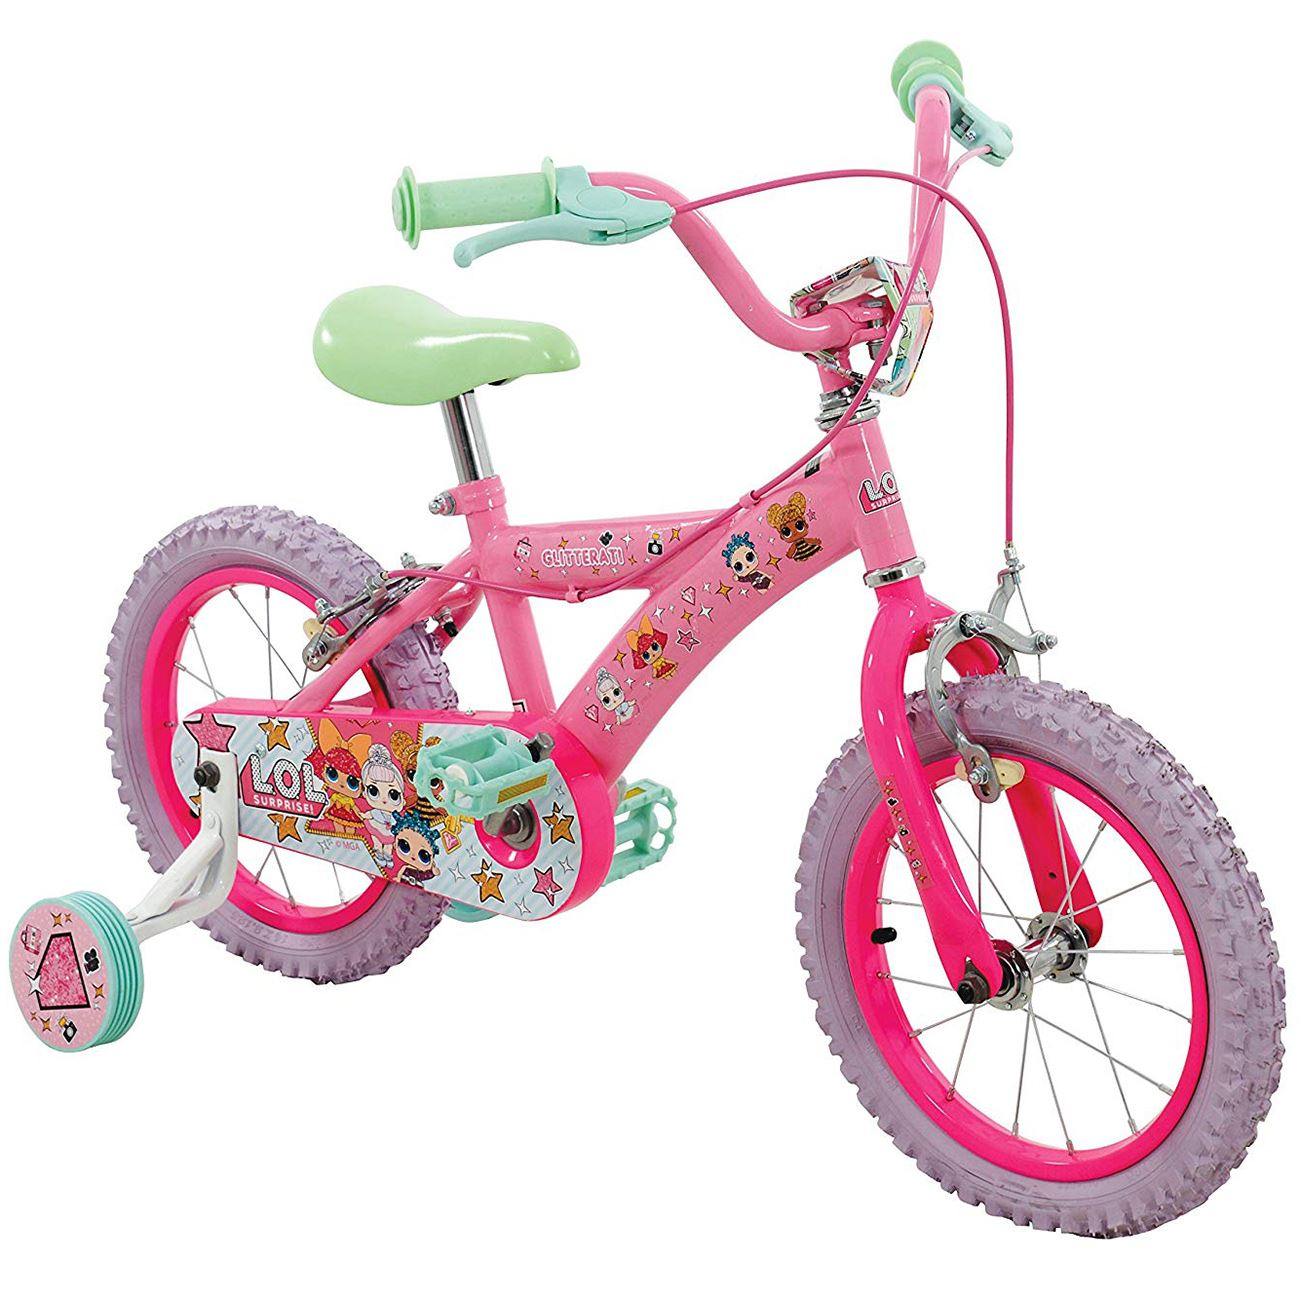 Details About Official Lol Surprise 14 Bike Bicycle Pneumatic Tyres Pink 3 Years